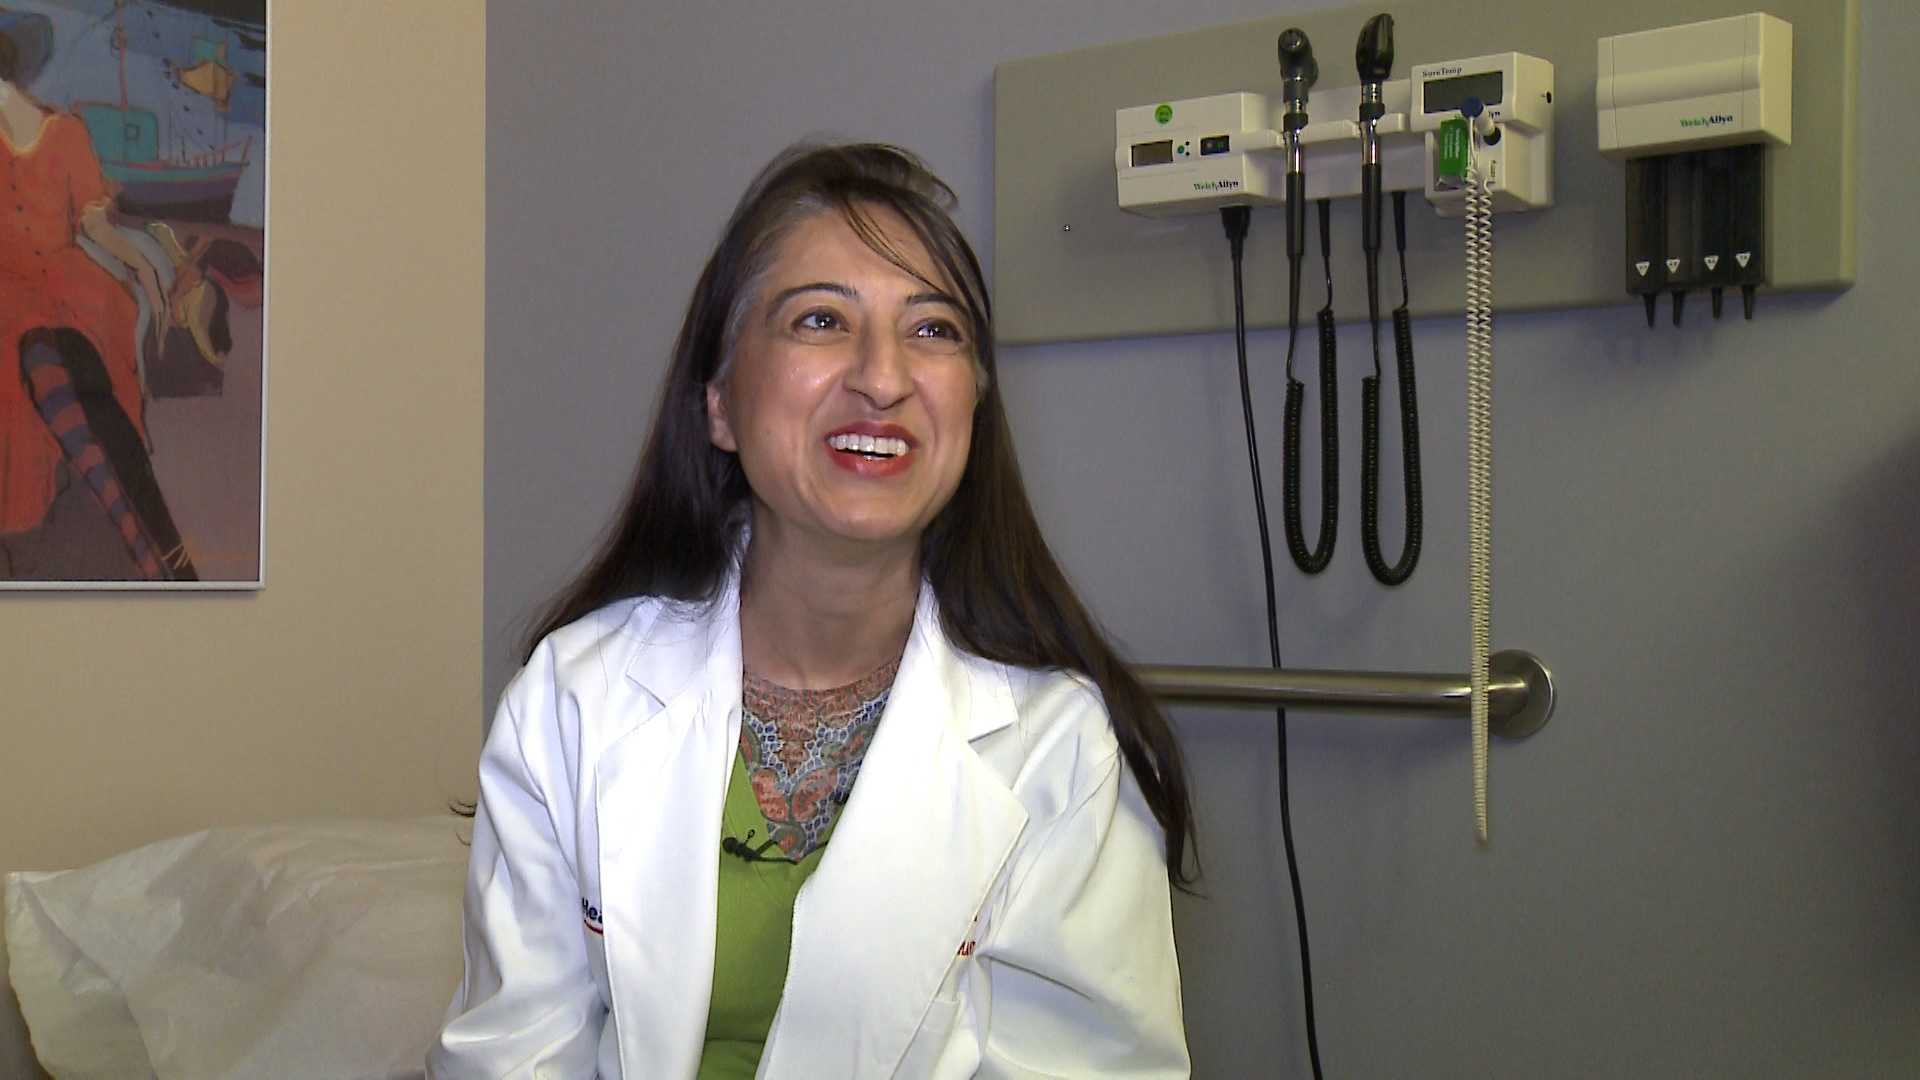 Dr. Nasia Safdar of the University of Wisconsin Hospital says the source of the Elizabethkingia outbreak is unknown.